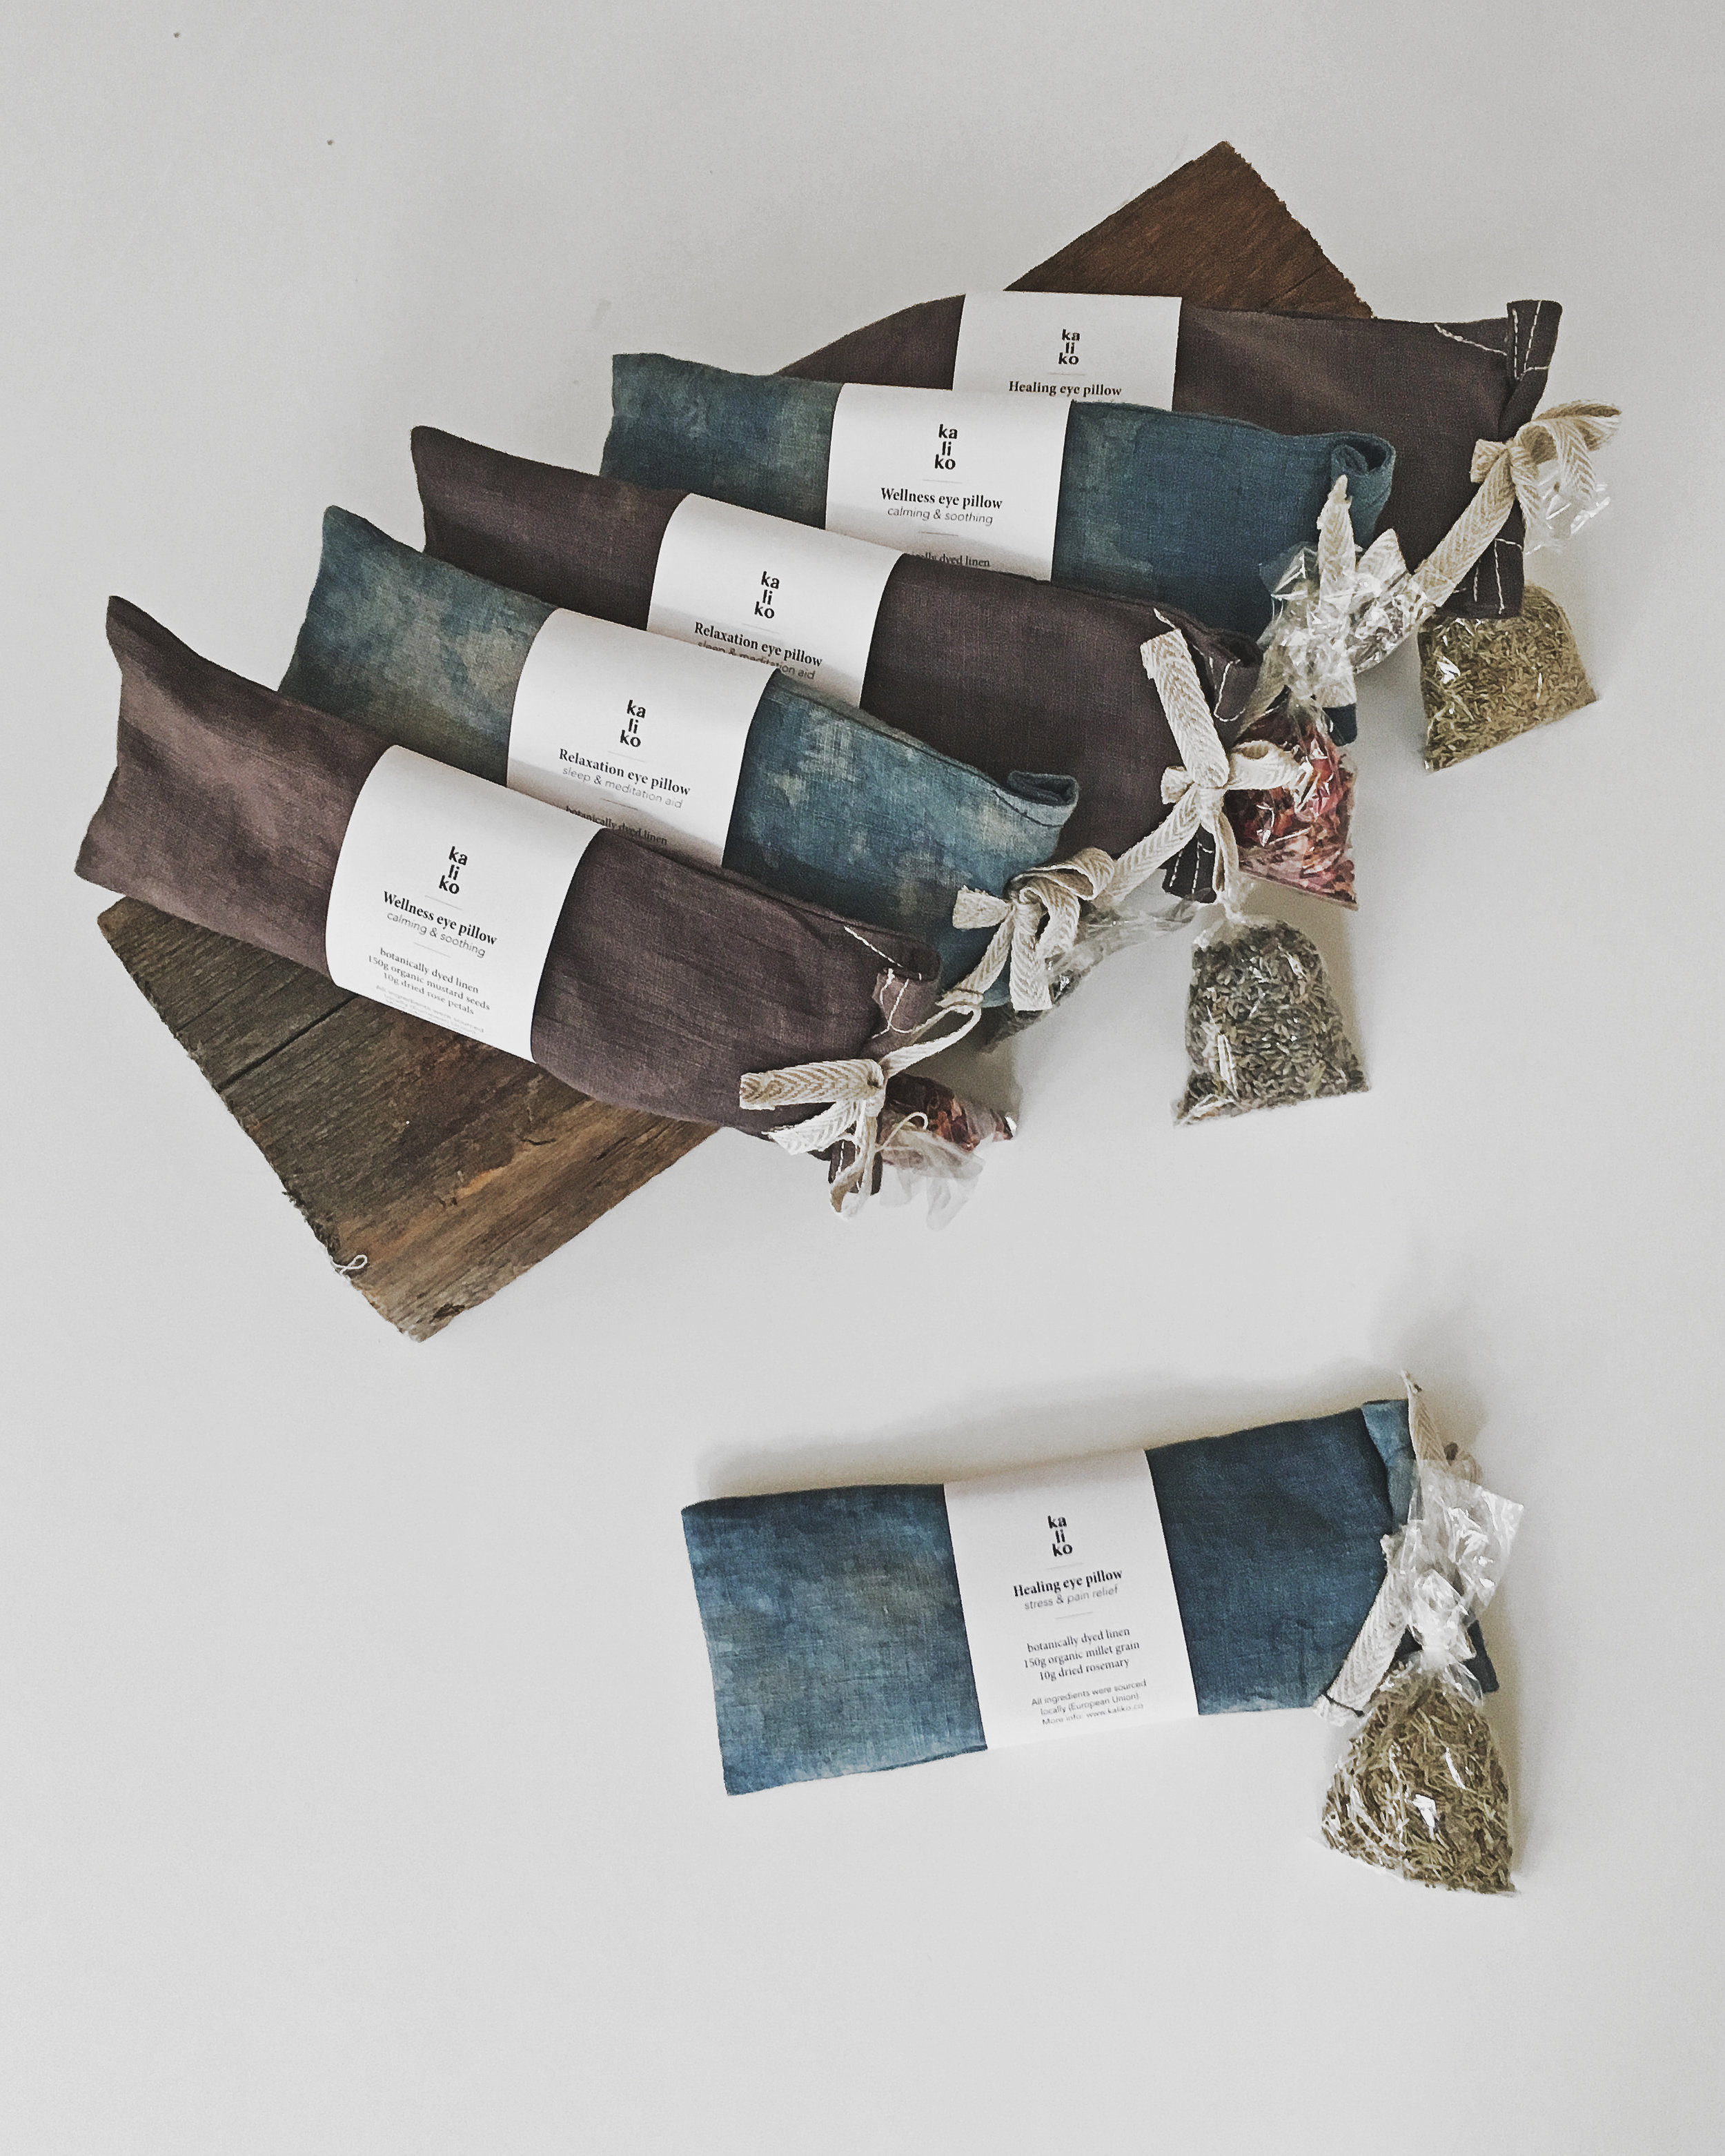 Linen eye pillows - new line of spa gifts